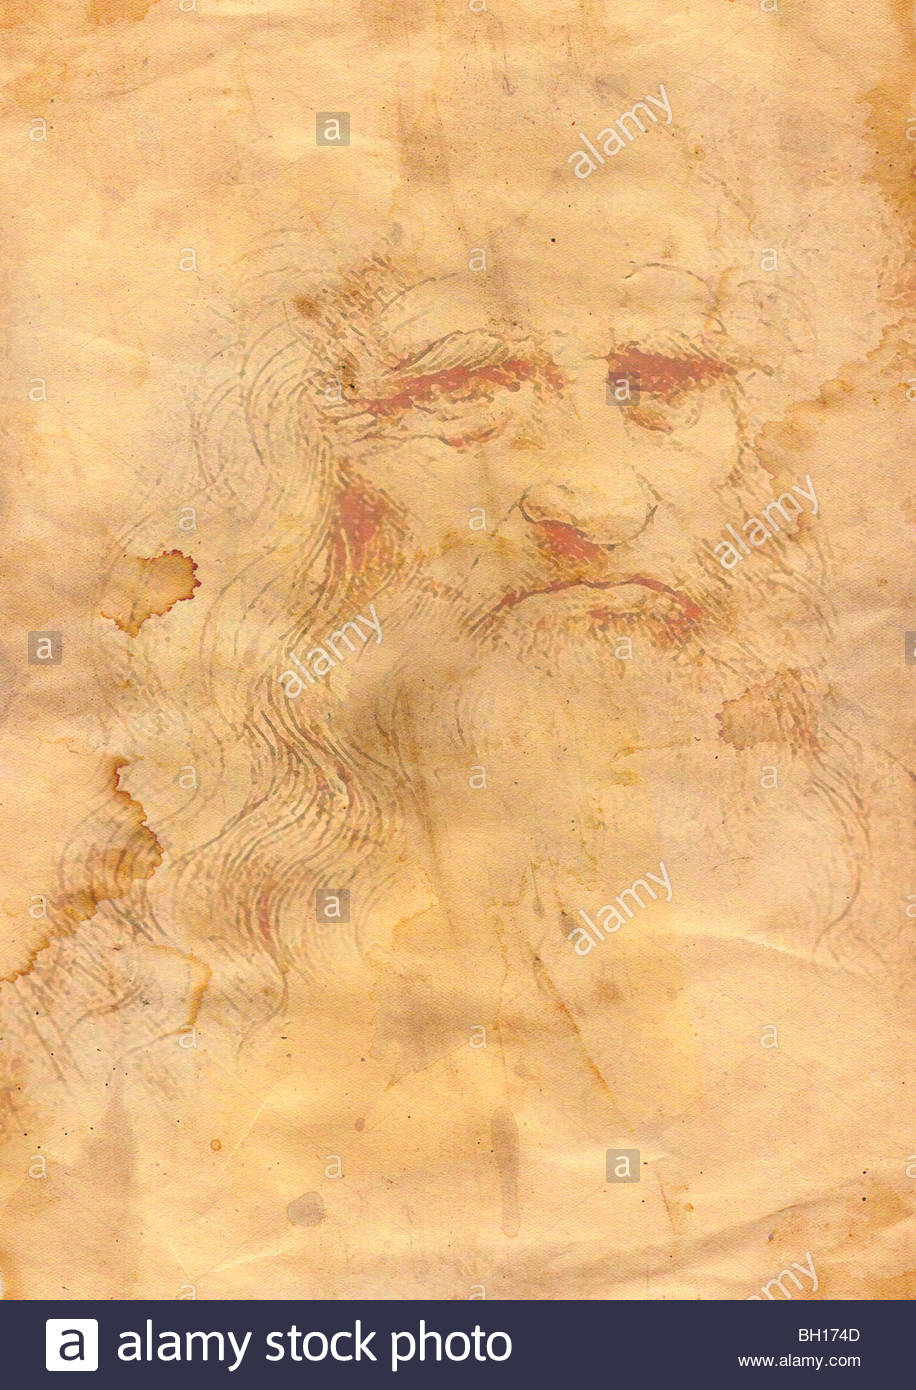 Abstract grunge background a la Leonardo da Vinci Stock Photo 916x1390